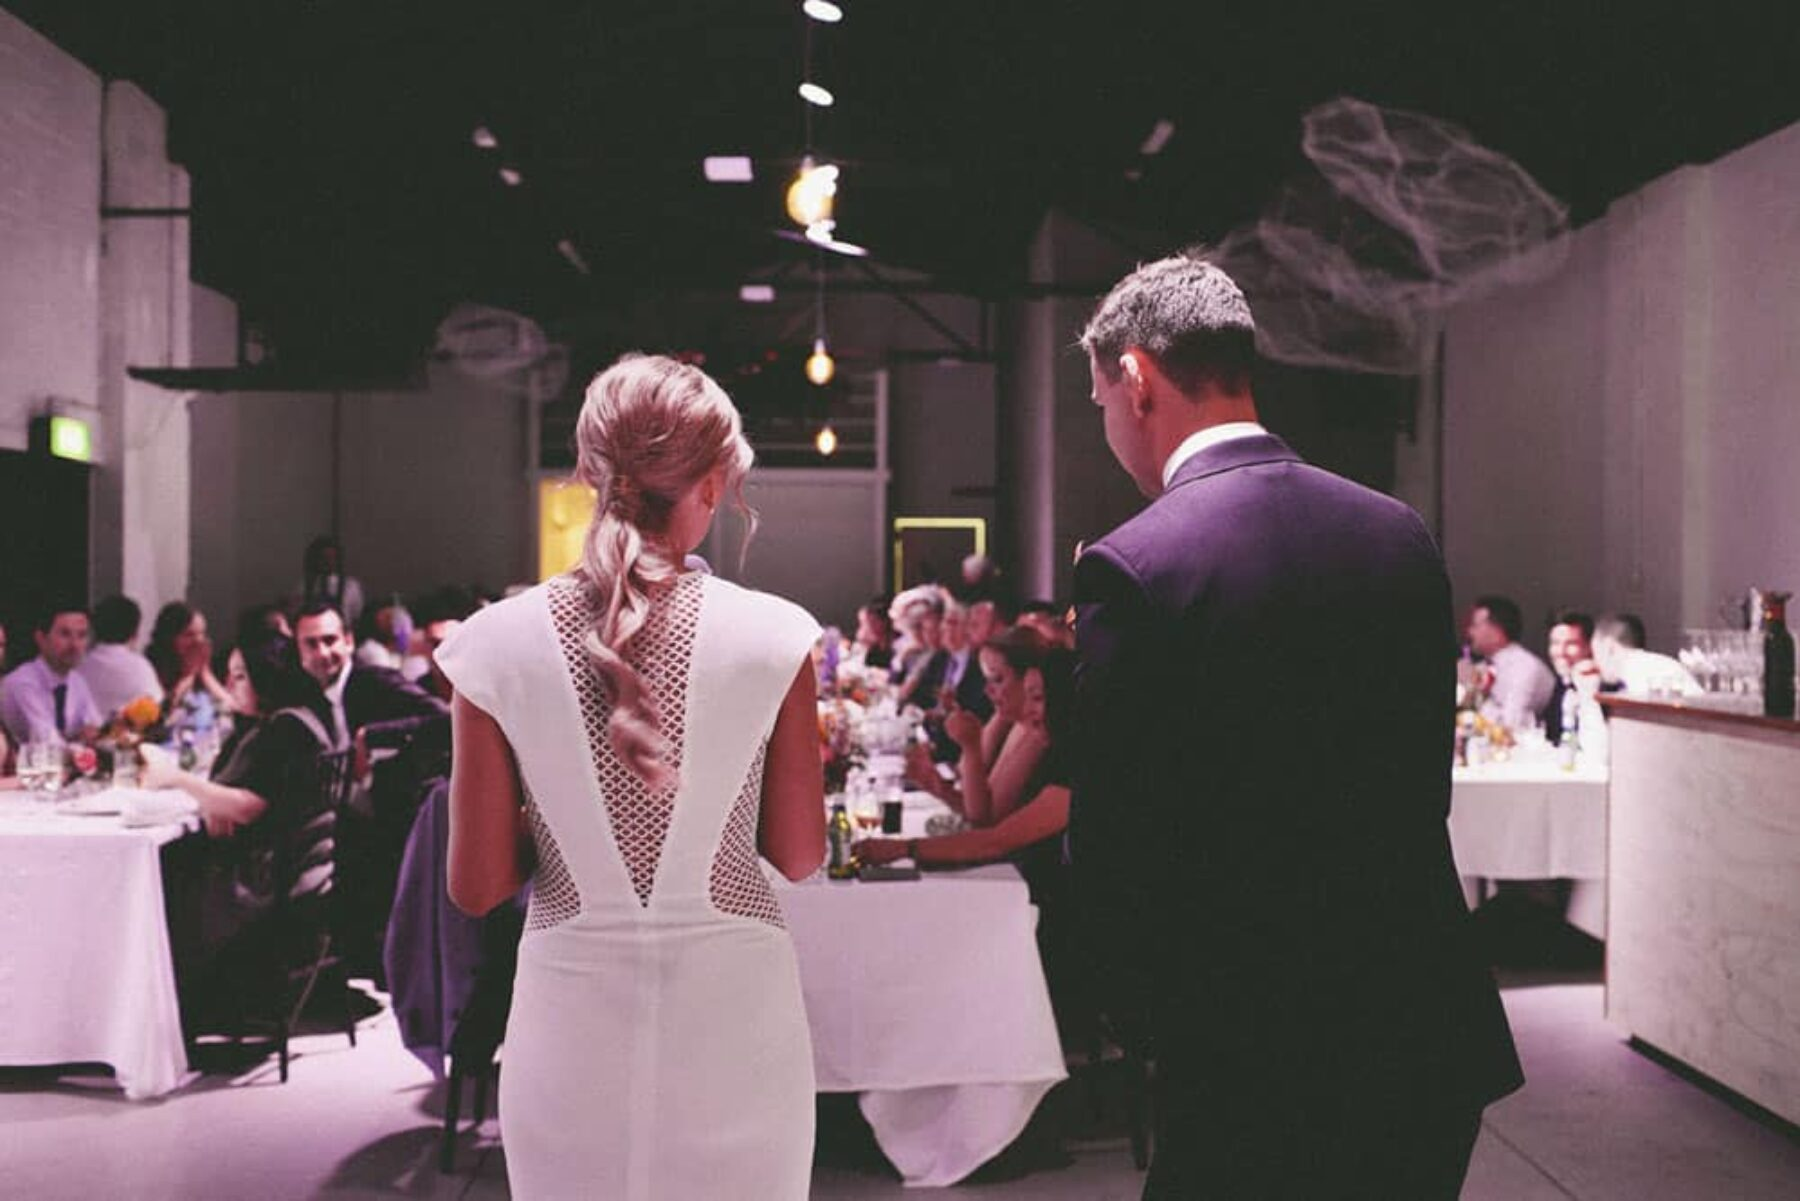 Industrial wedding at Ellis Street Studio